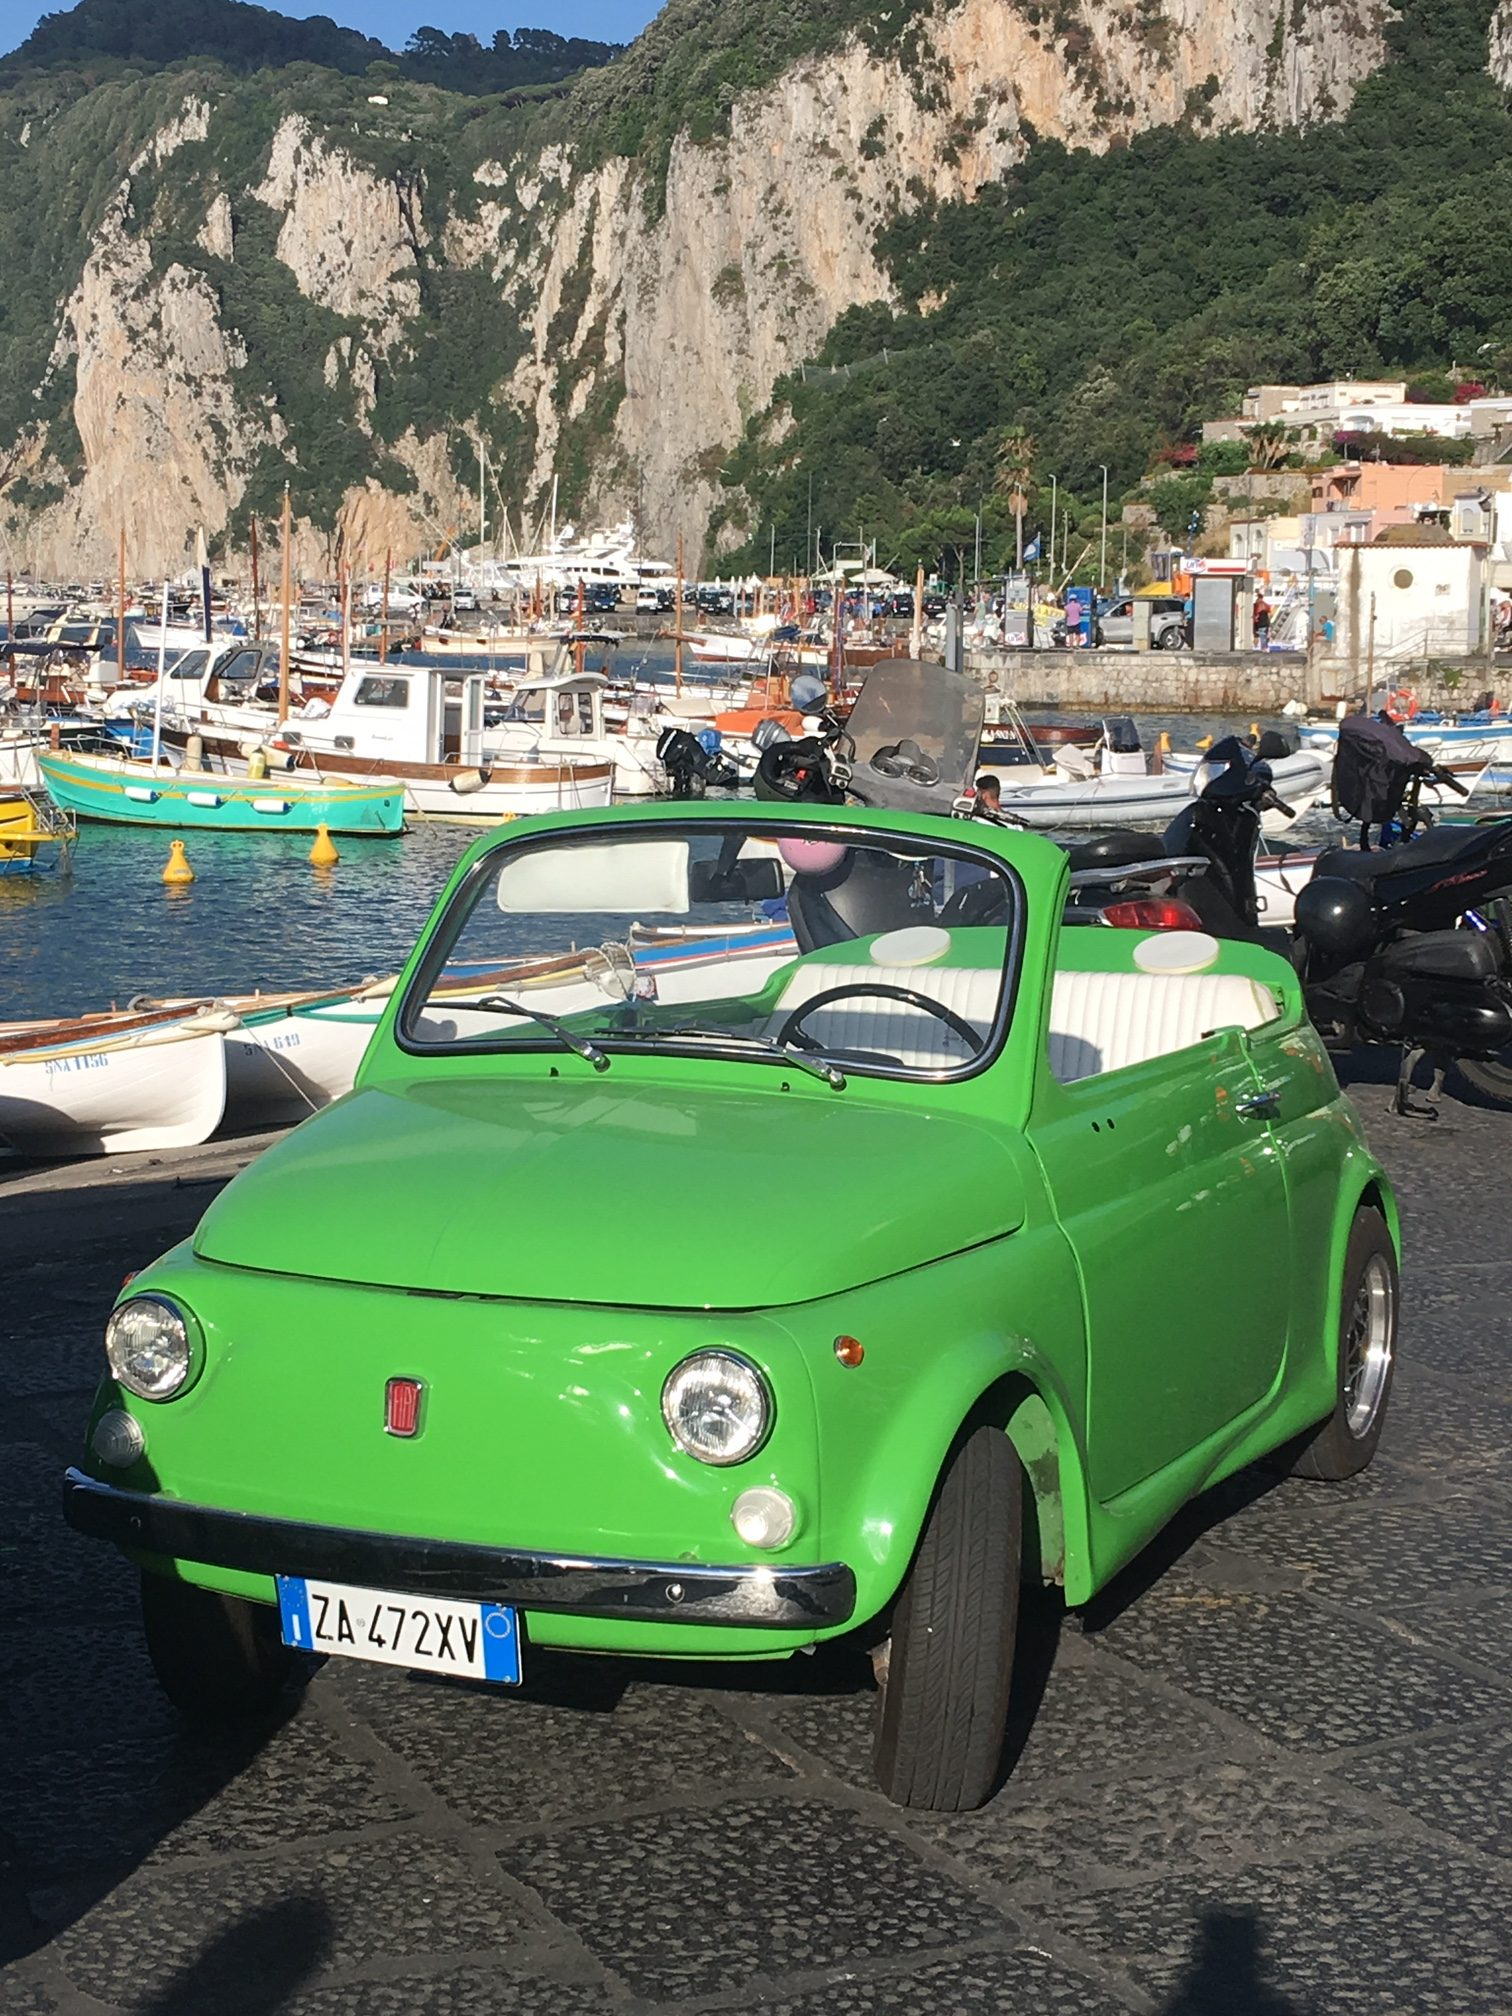 Green Fiat 500 in Capri. Learn how to get the best deals on airline tickets. If you could fly anywhere in the world, where would you go?